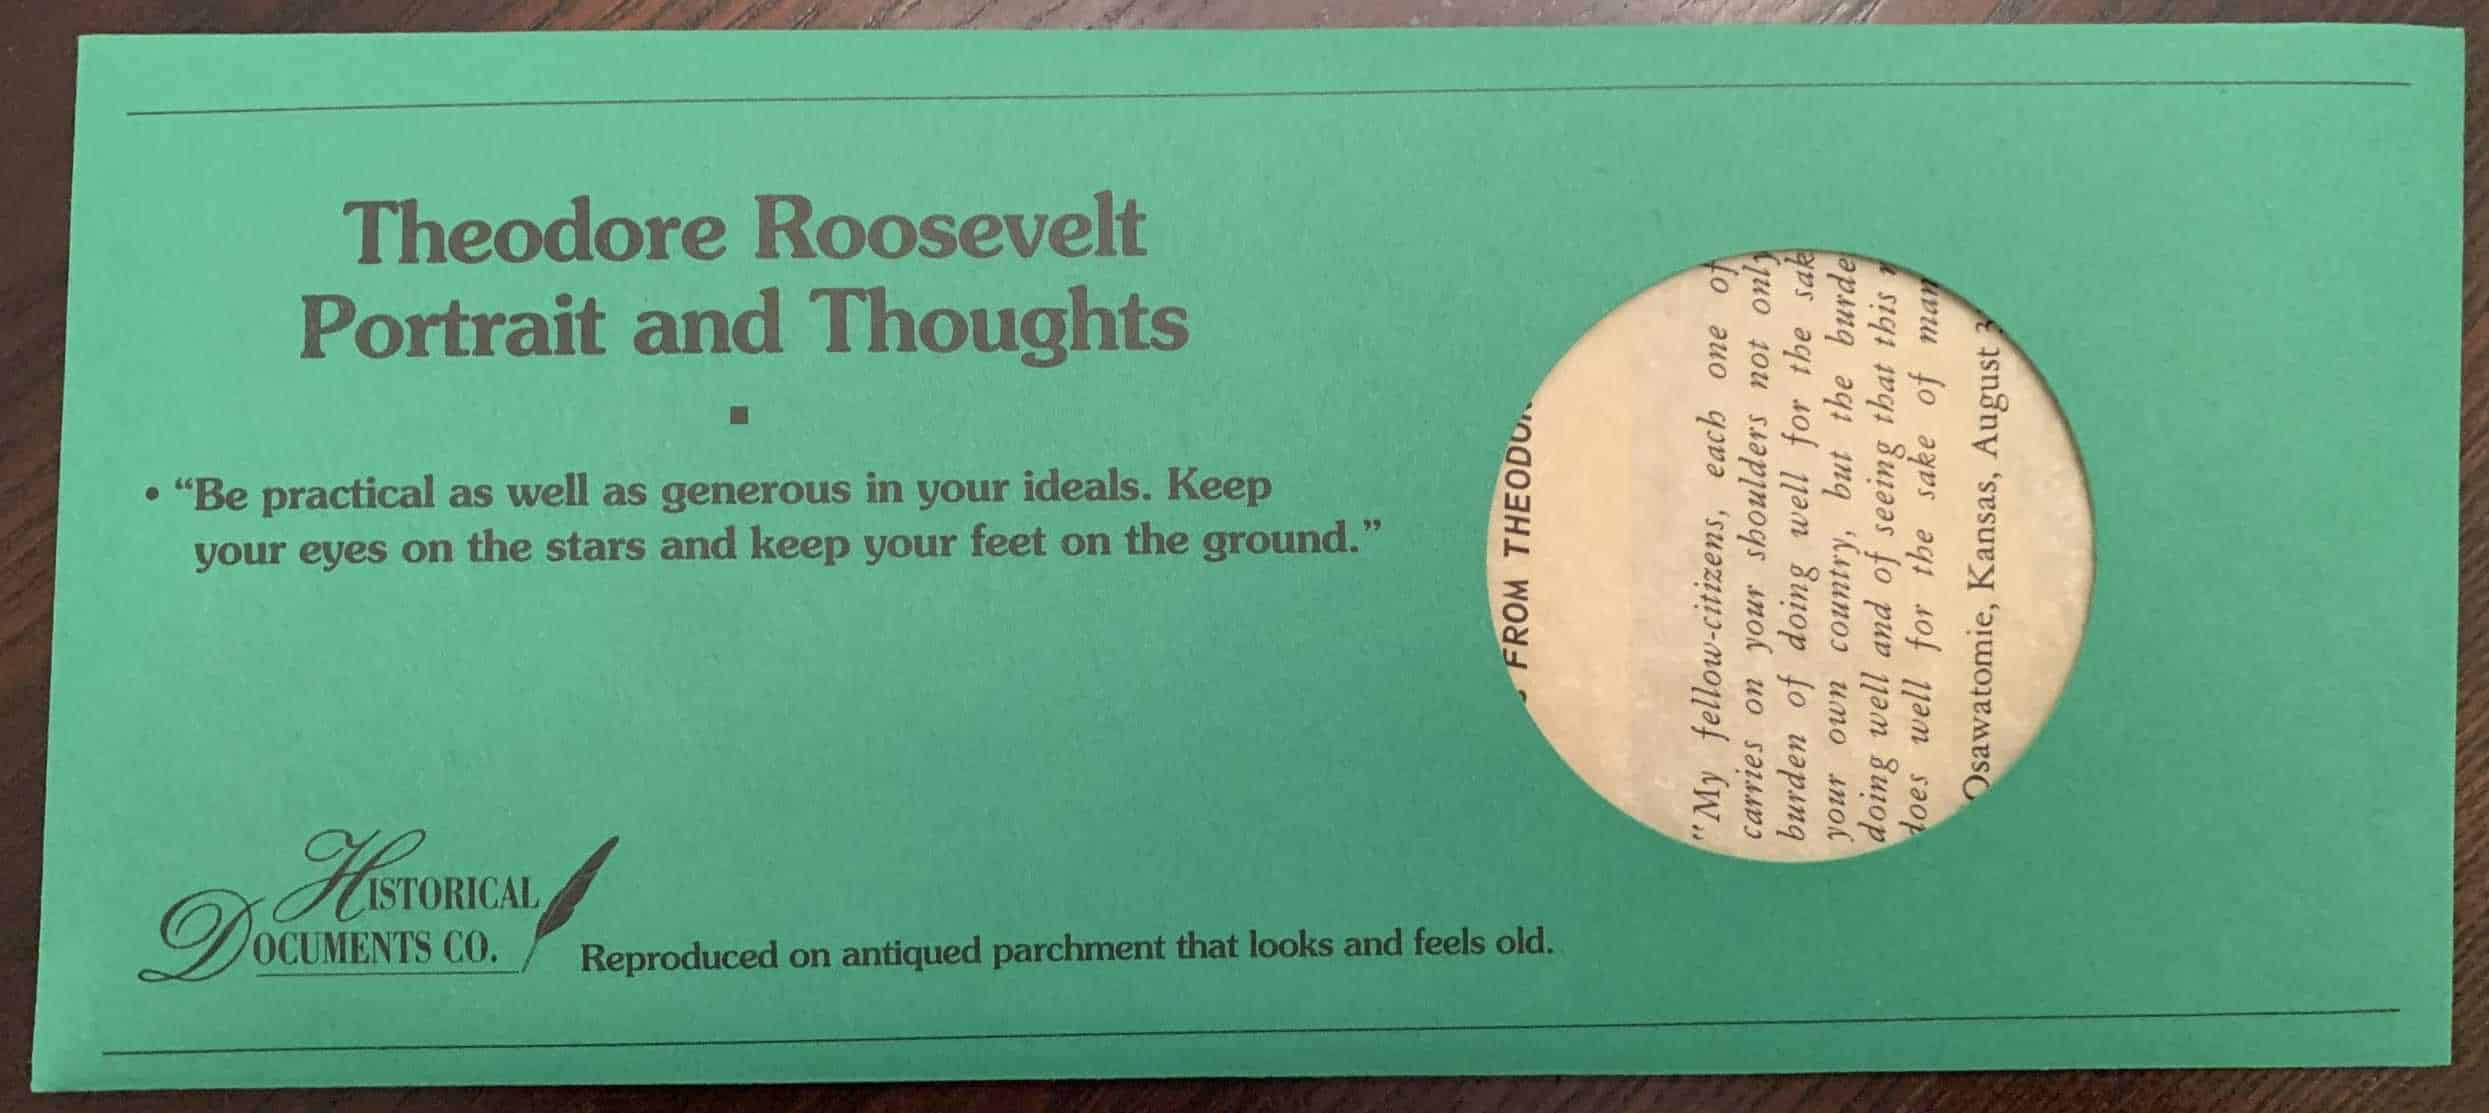 Theodore Roosevelt Portrait and Thoughts